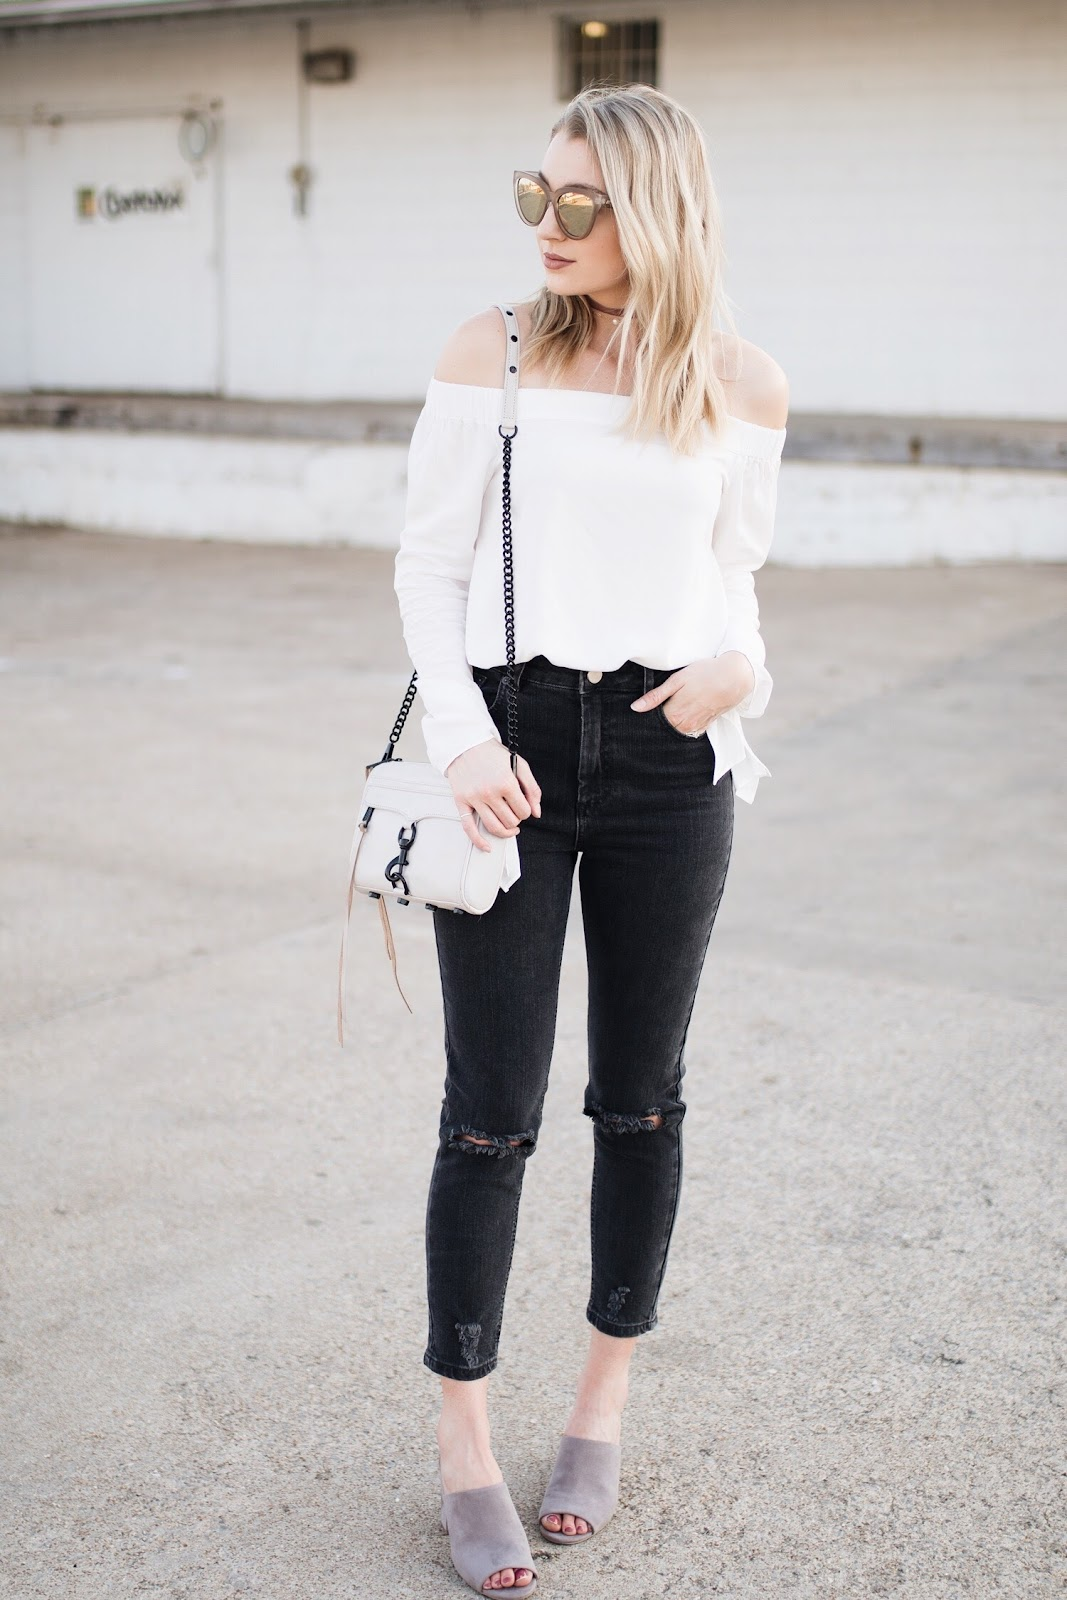 white off-the-shoulder top with tie details